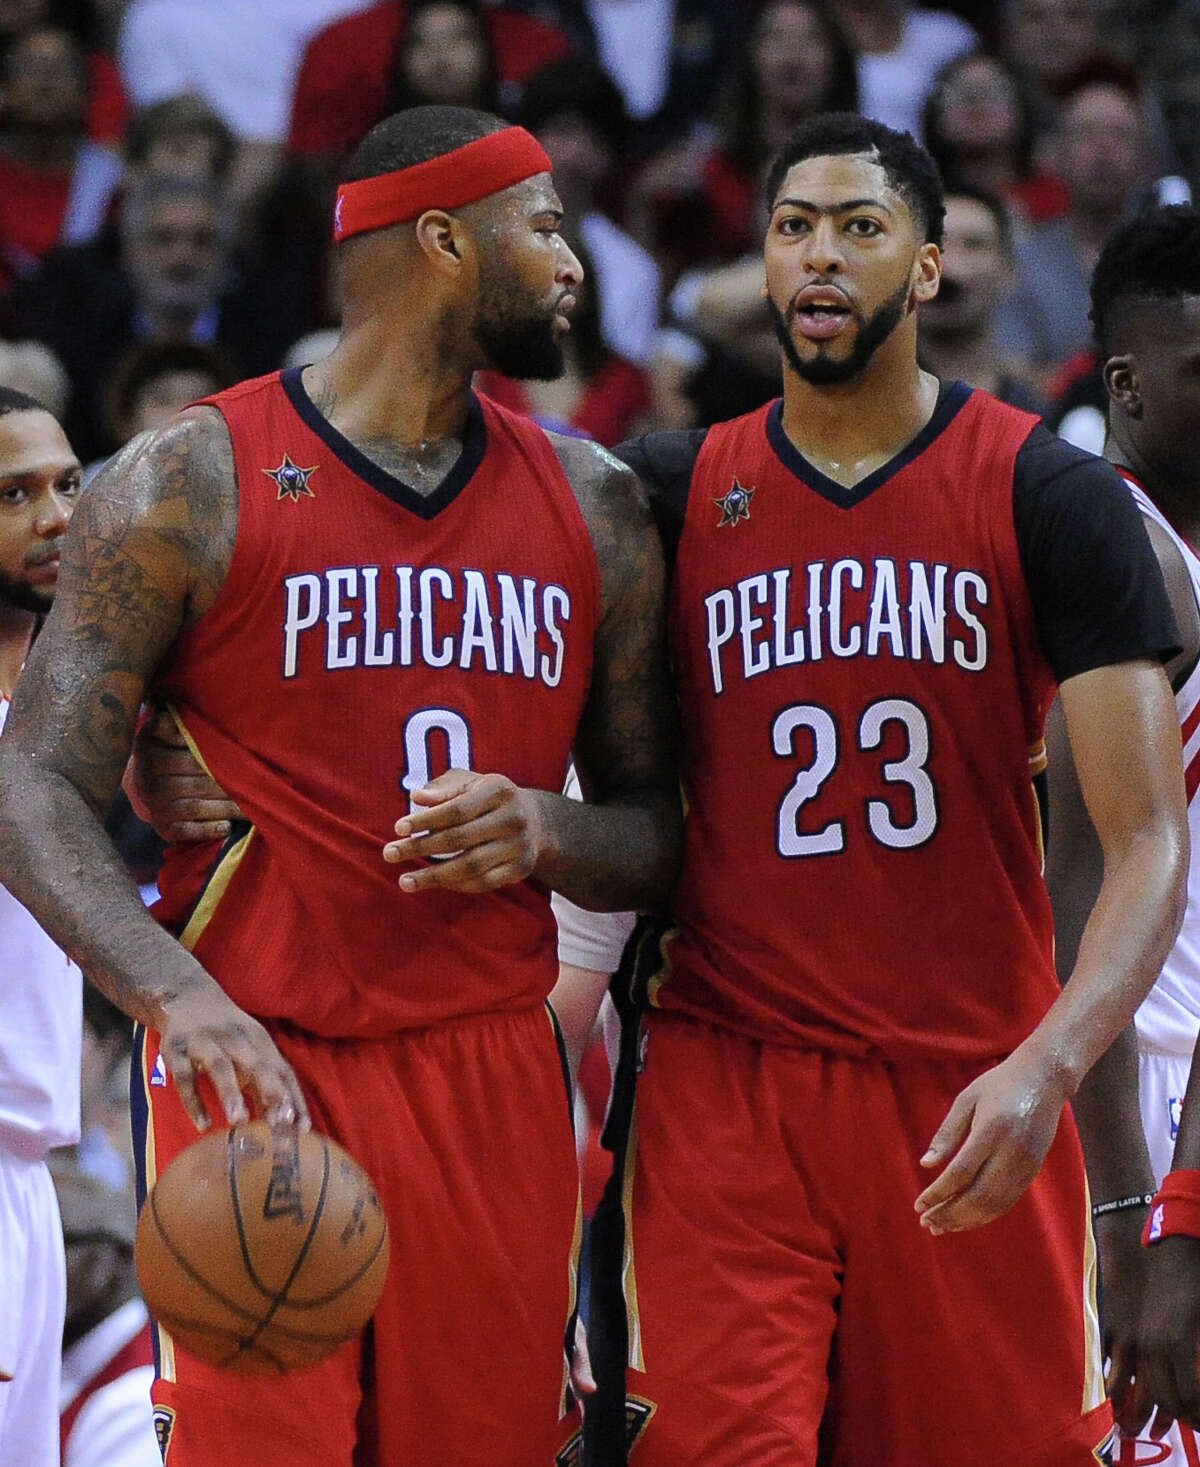 New Orleans Pelicans forward Anthony Davis (23) Anthony Davis (23) pulls DeMarcus Cousins (0) away from an altercation against the Houston Rockets in the second half of an NBA basketball game Friday, March 24, 2017, in Houston. (AP Photo/George Bridges)